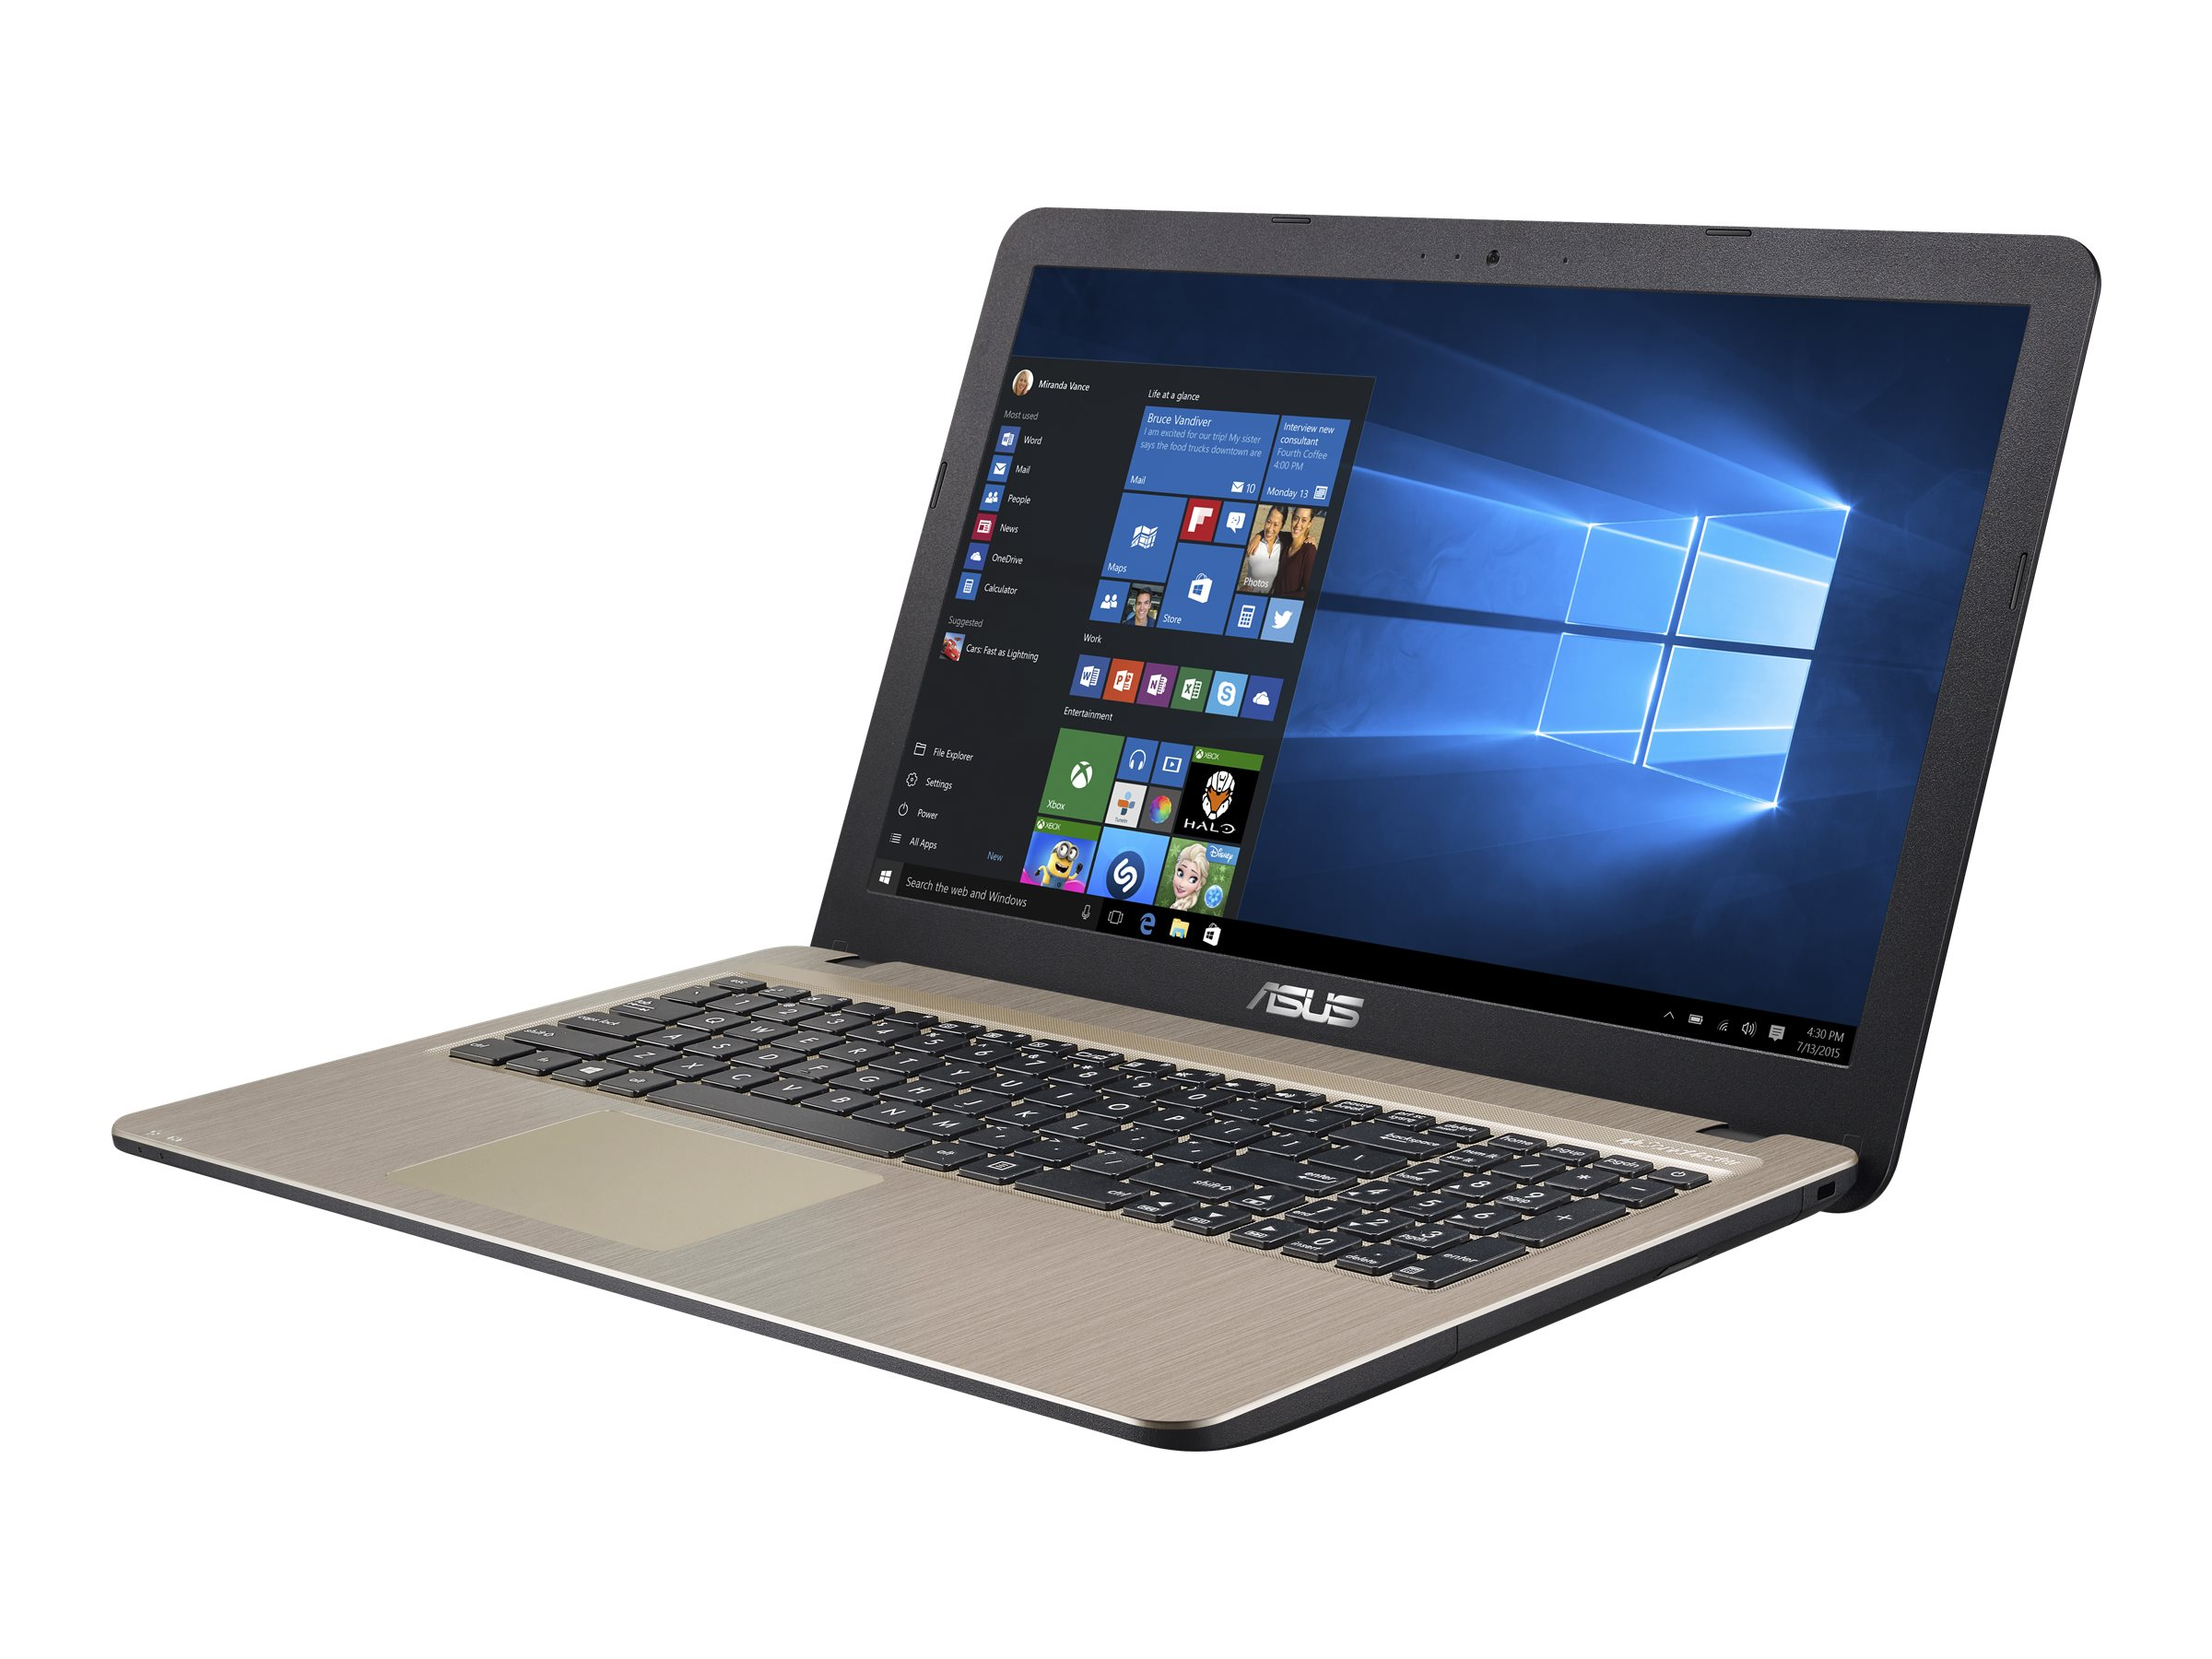 Asus Notebook PC Celeron N3050 4GB 500GB 15.6